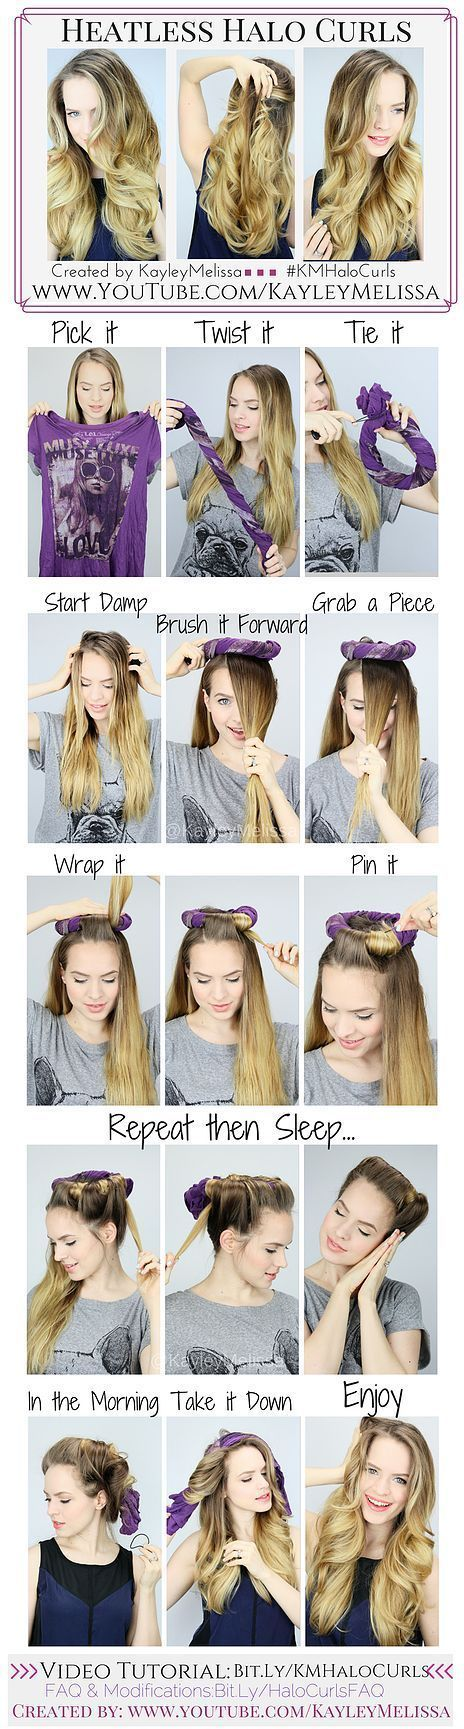 awesome Heatless Halo Curls Hair Tutorial hair long hair curly hair diy hair hairstyles hair tutorials easy hairstyles by http://www.dana-hairstyles.xyz/hair-tutorials/heatless-halo-curls-hair-tutorial-hair-long-hair-curly-hair-diy-hair-hairstyles-hair-tutorials-easy-hairstyles/